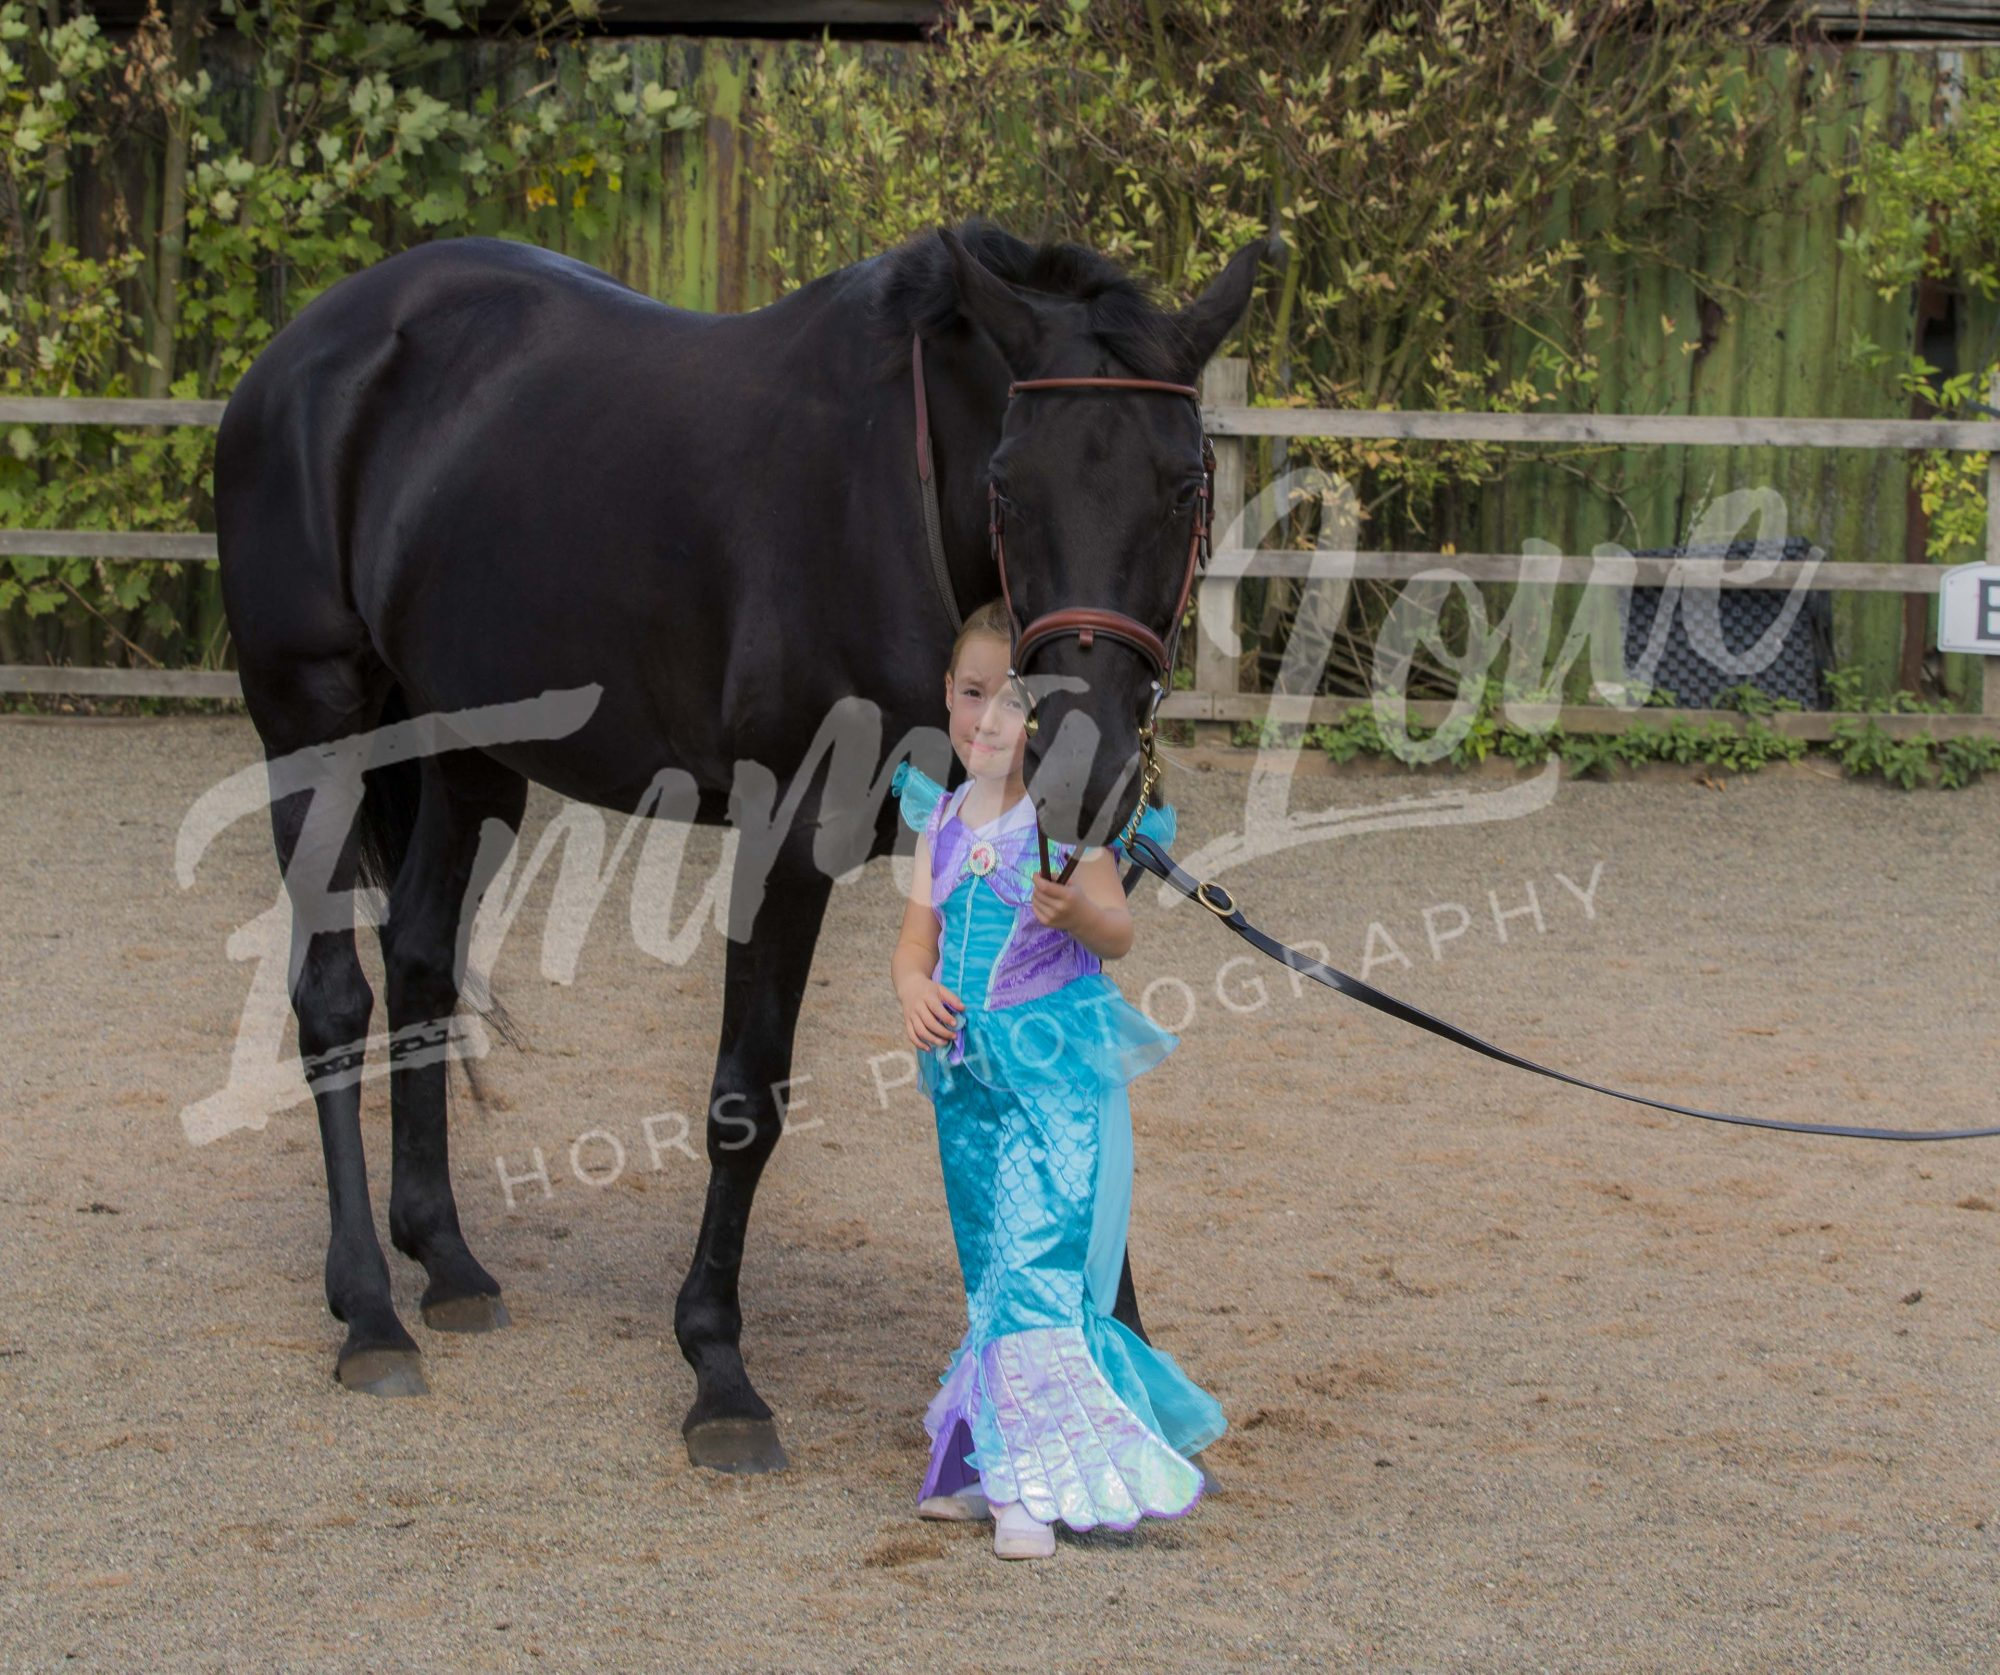 https://emmalowehorsephotography.co.uk/wp-content/uploads/2018/11/DN031.jpg